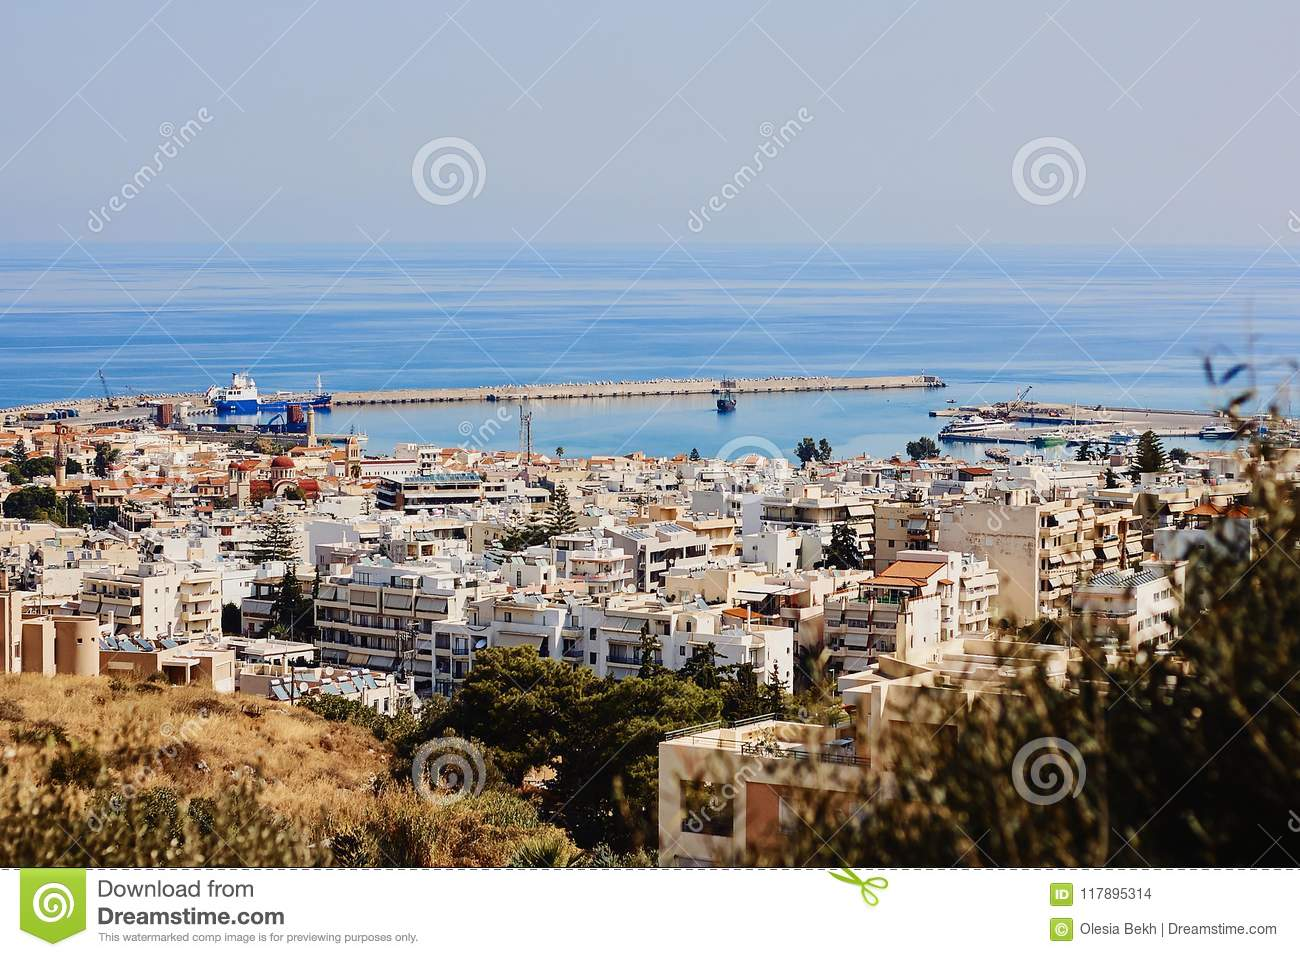 Top view of the Greek city Rethymno, harbor and Aegean Sea, Crete, Greece